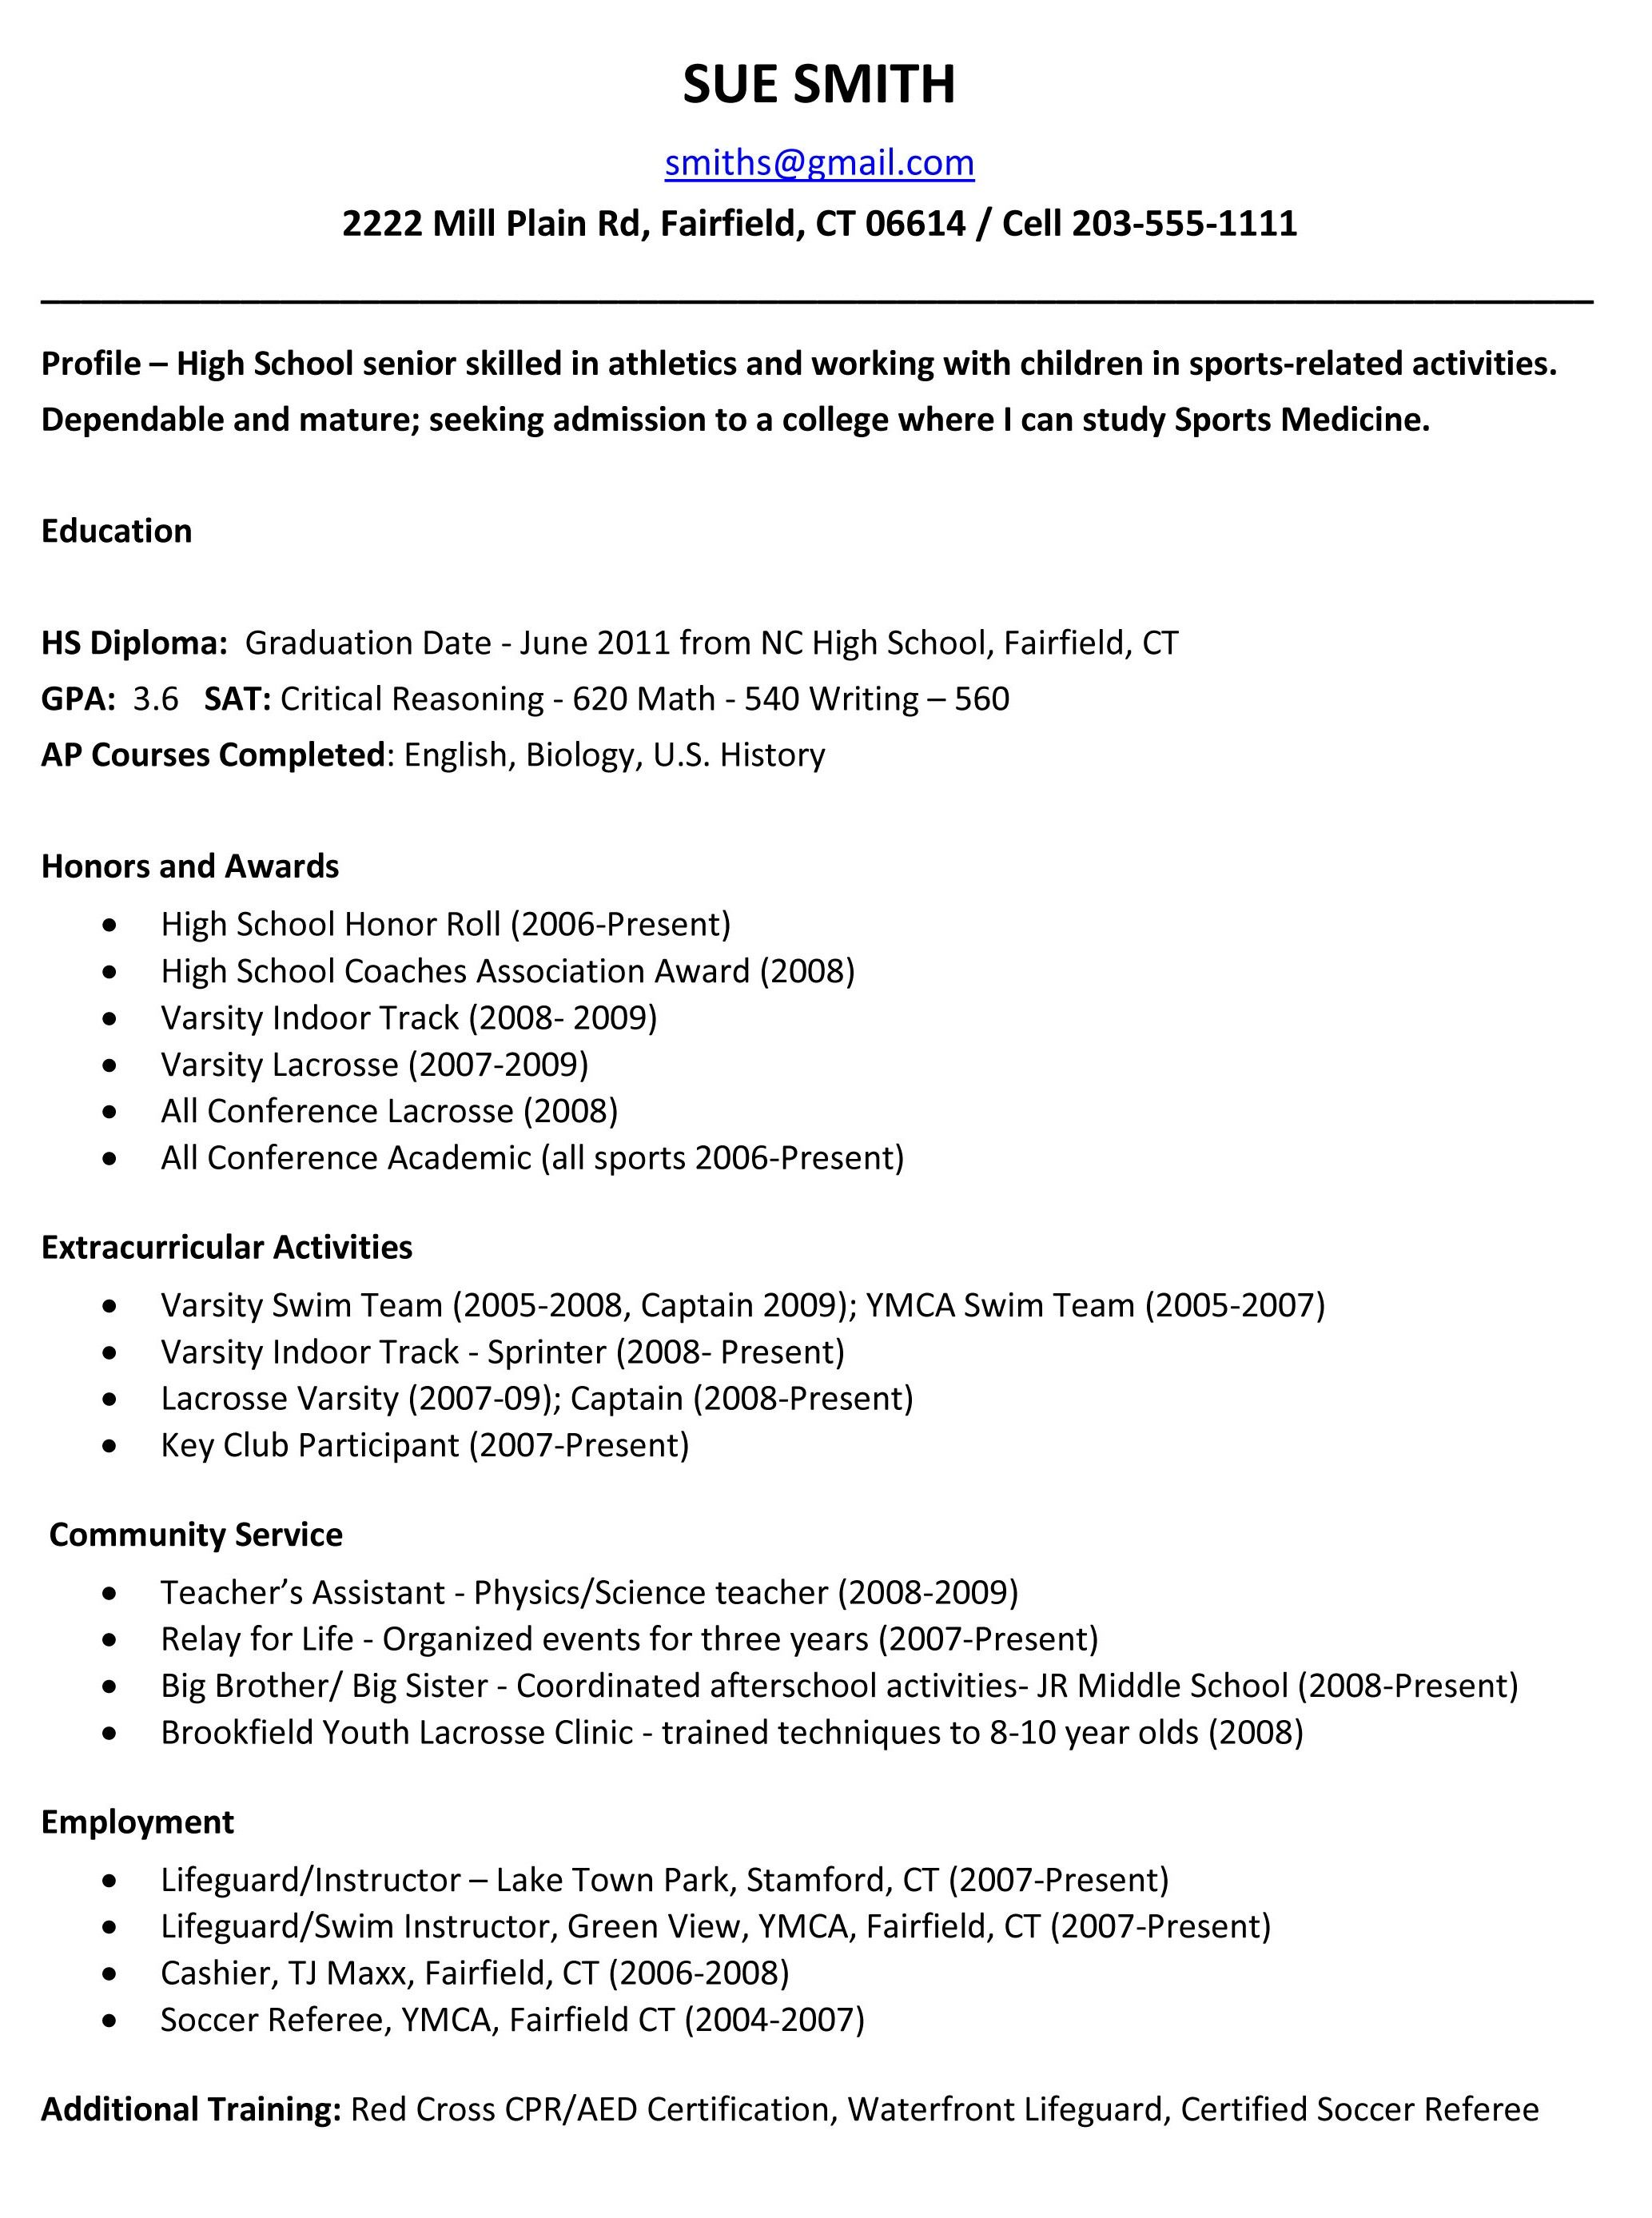 Example Resume For High School Students For College Applications School  Resume Templateregularmidwesterners.com | Regularmidwesterners